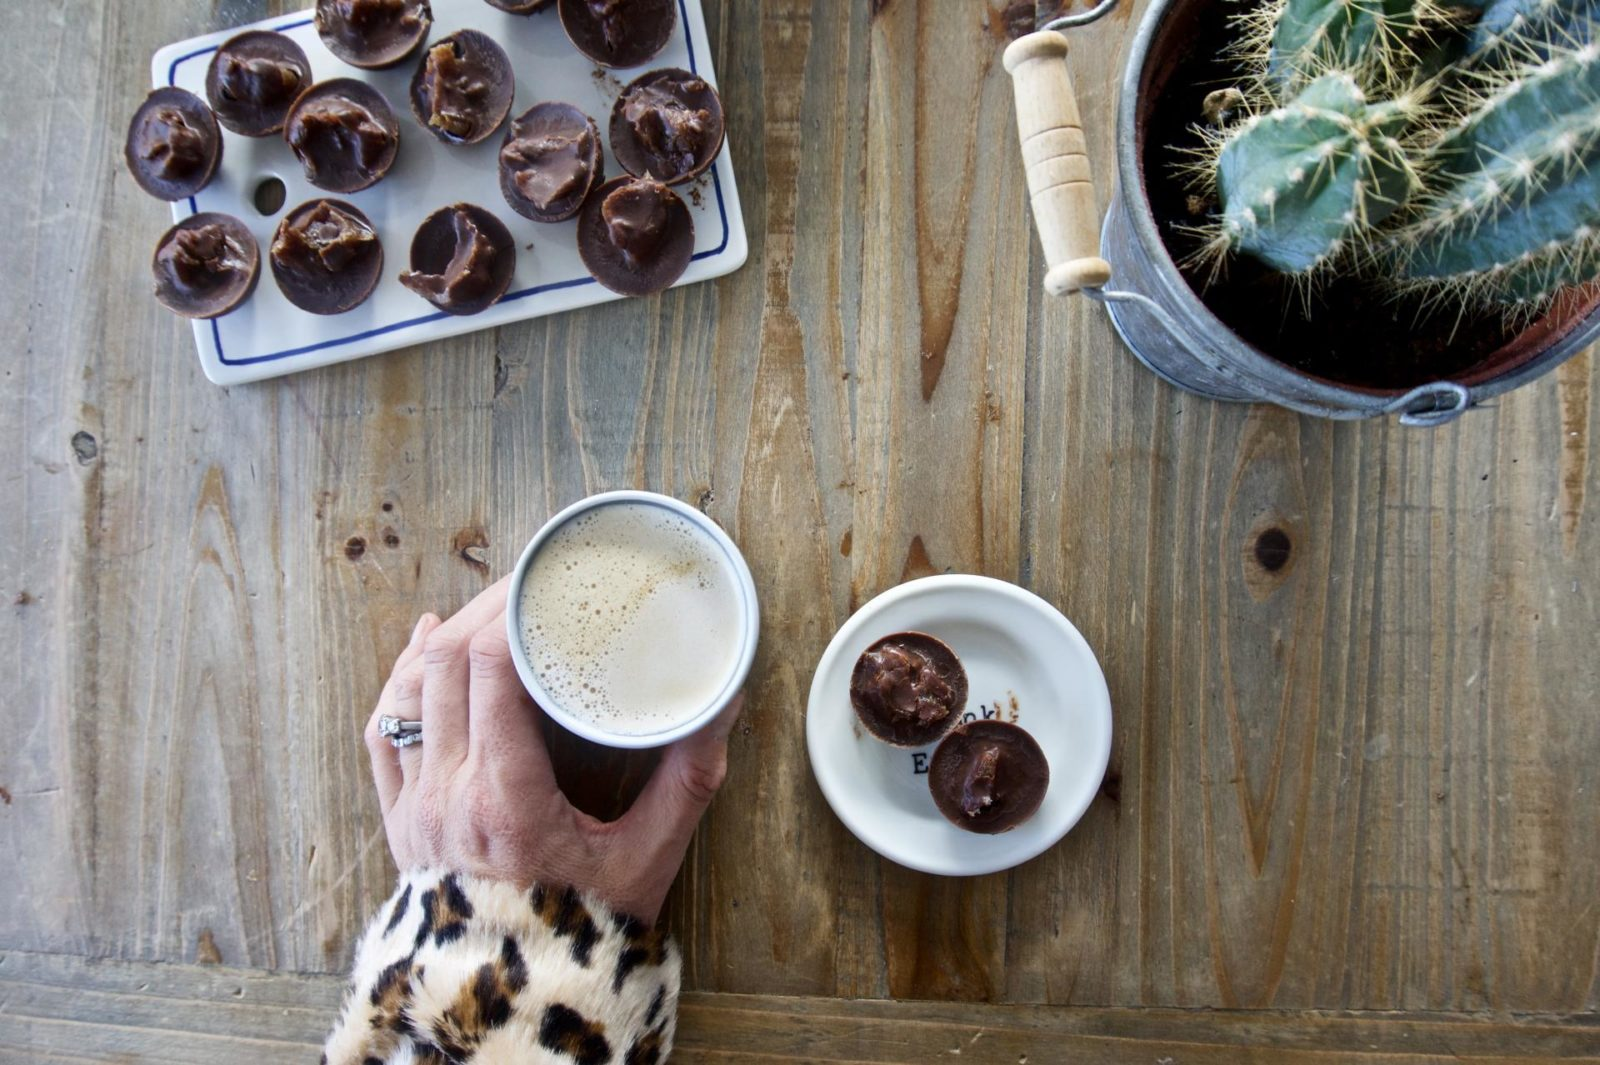 Salted Caramel Chocolate Cups for the win.